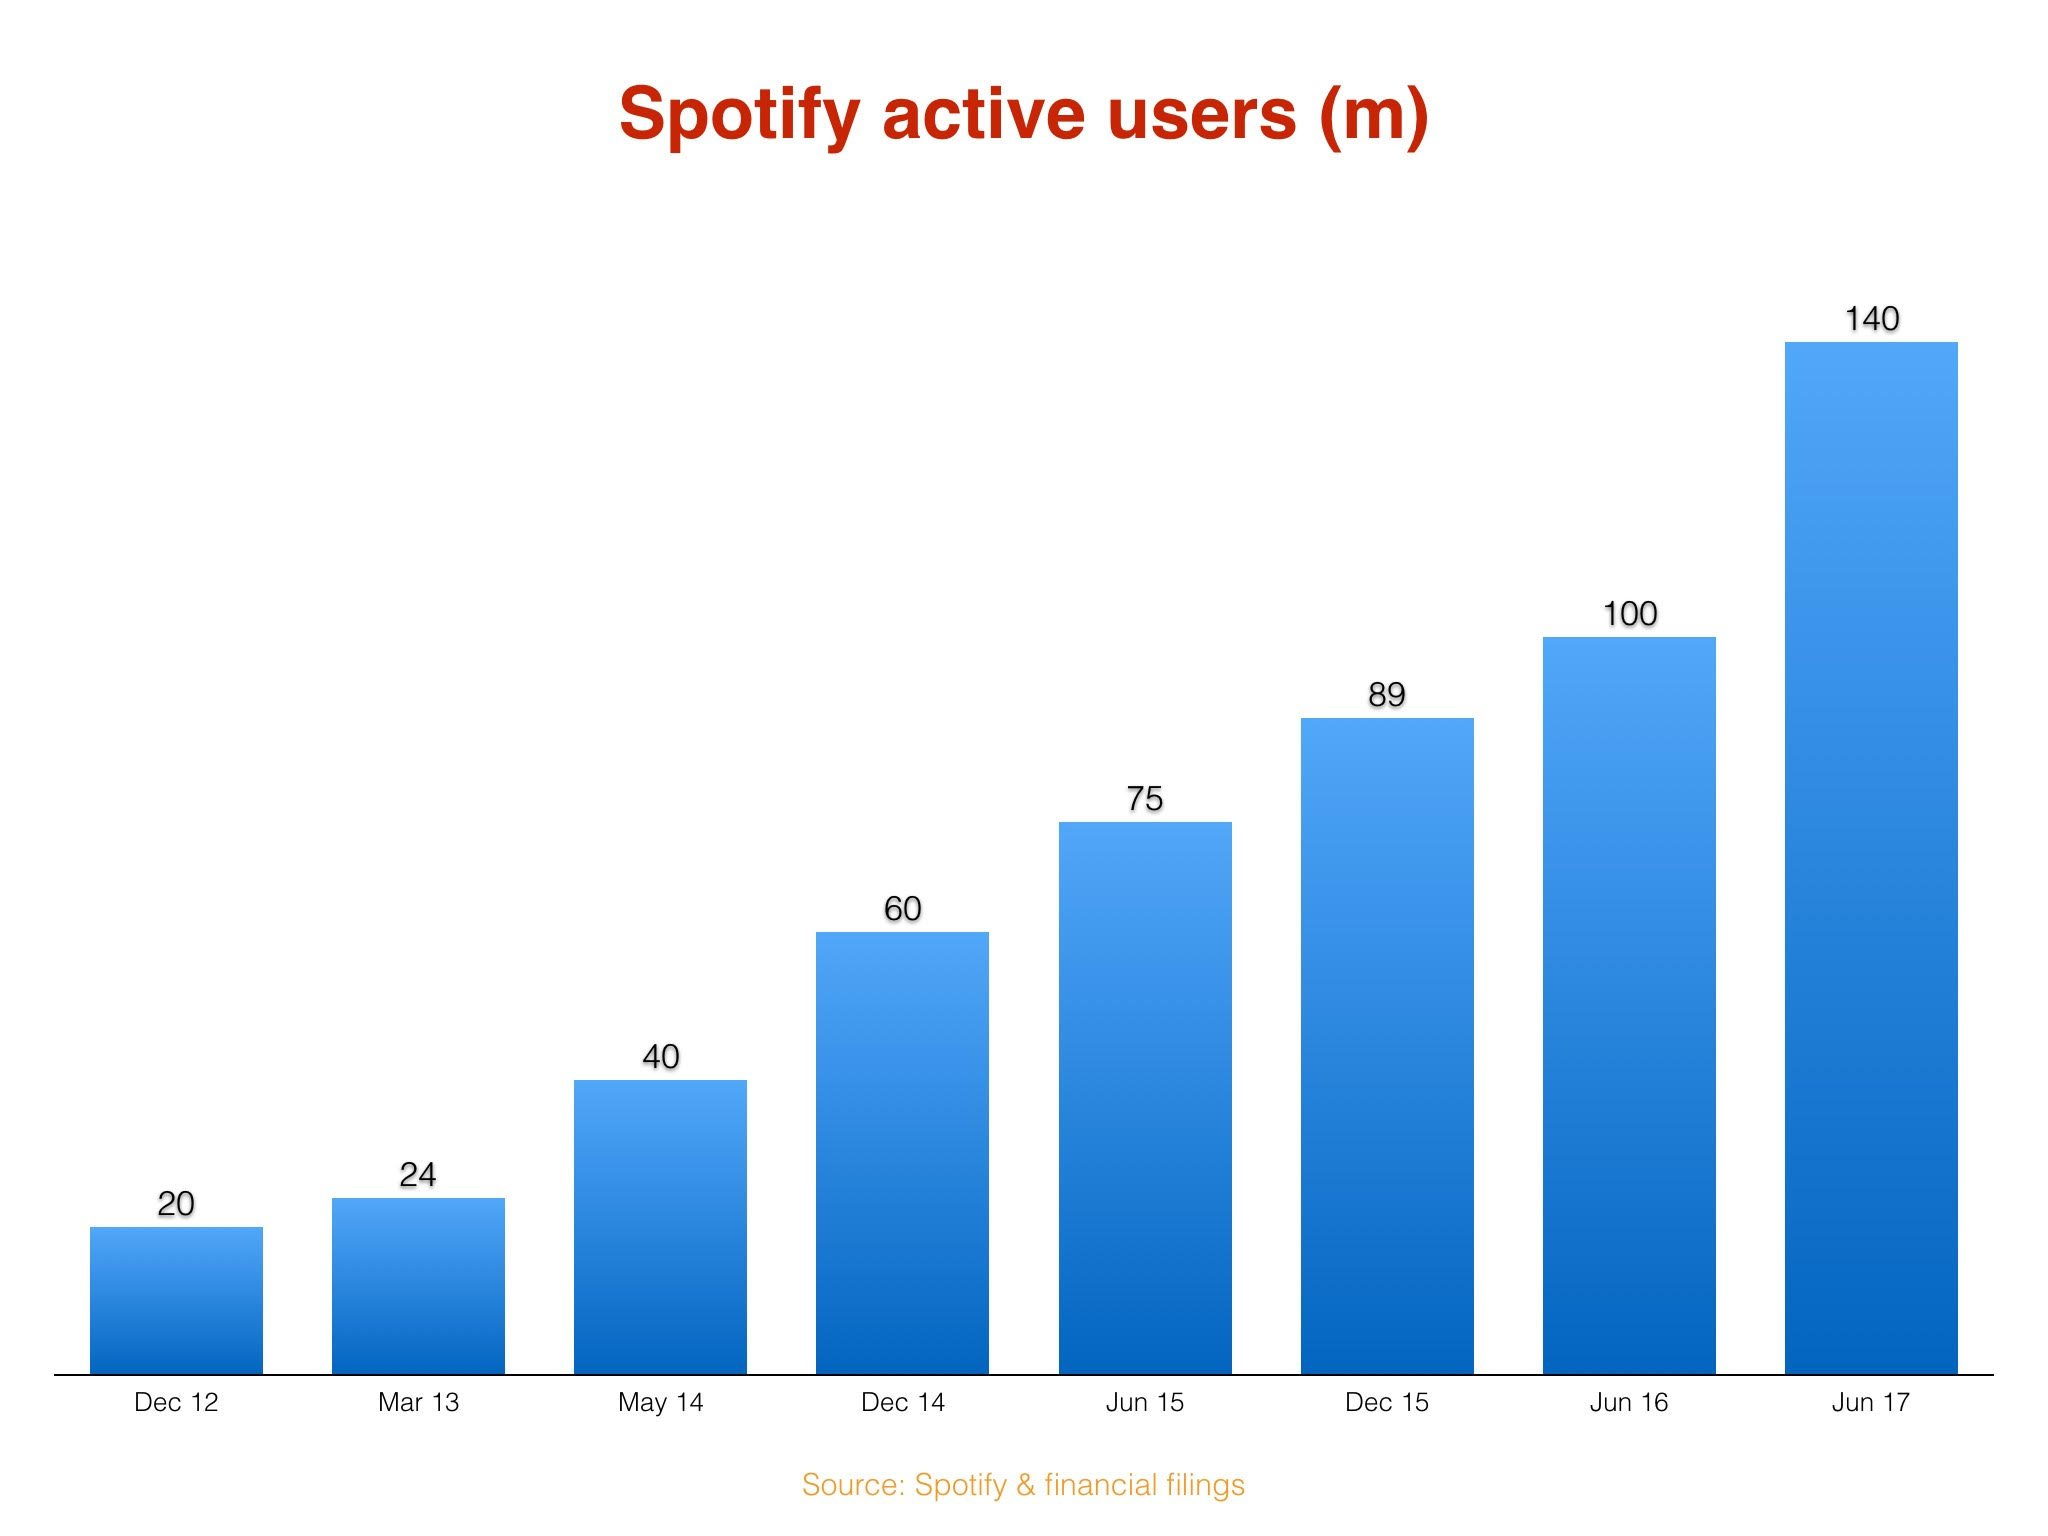 Spotify now has 140 million active users